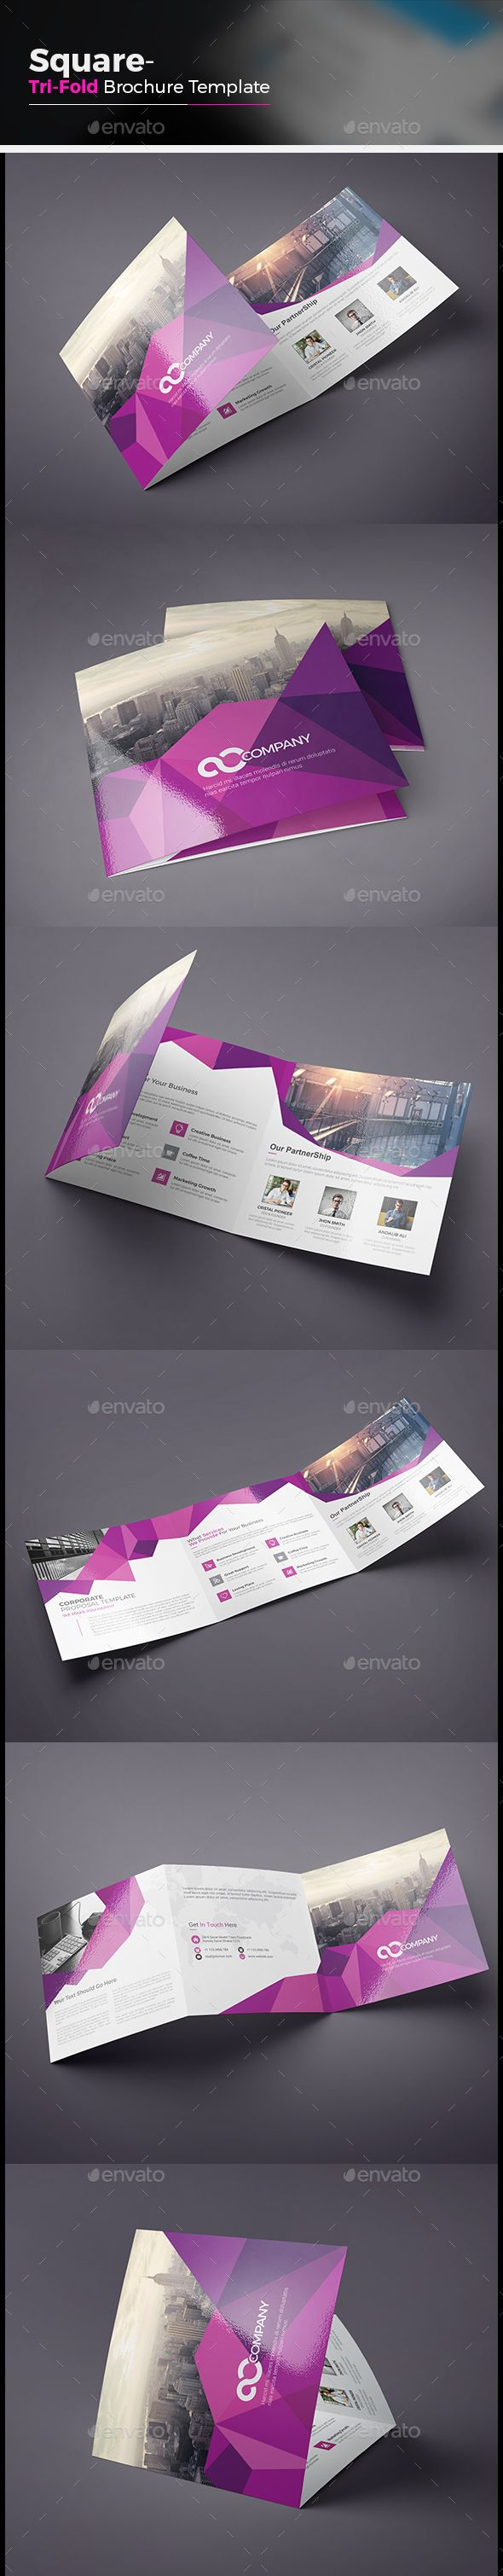 Abstract Square Tri fold Brochure — Vector EPS #tri fold abstract brochure #elegant • Available here → https://graphicriver.net/item/abstract-square-tri-fold-brochure/14620504?ref=pxcr